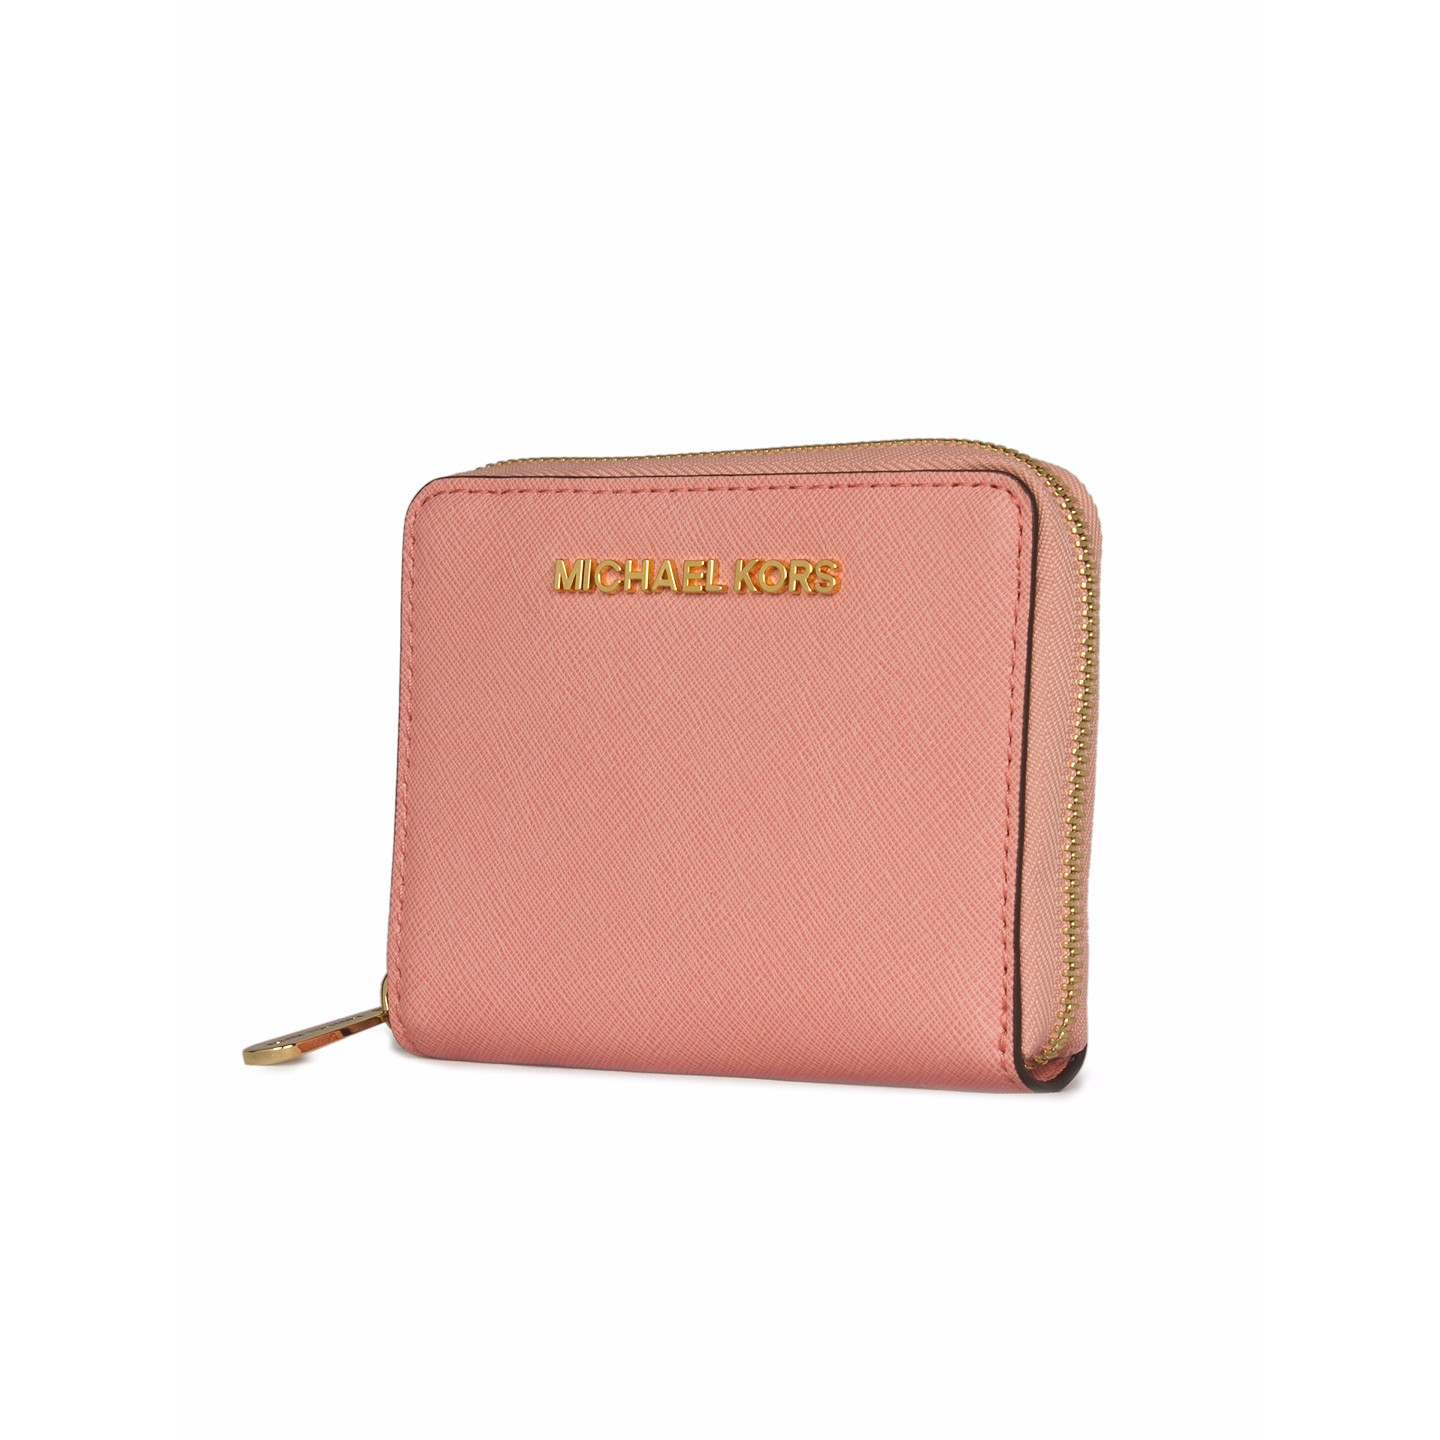 f2181f3218f0 Michael Kors Small Zip Around Leather Wallet - LabelCentric